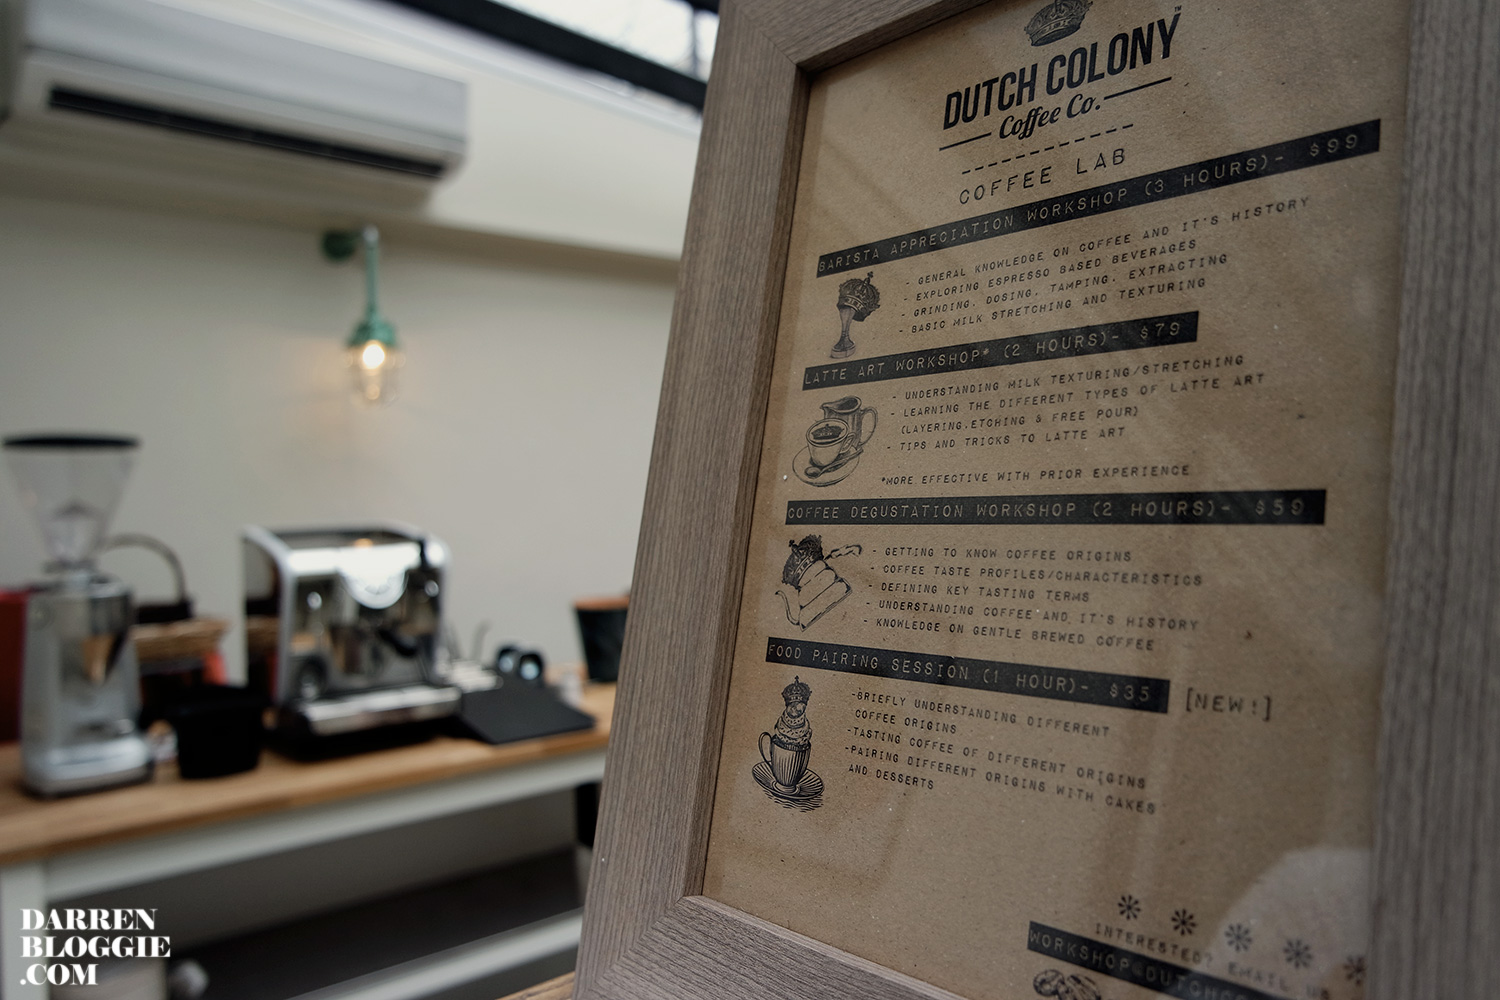 Dutch colony coffee co at frankel ave siglap